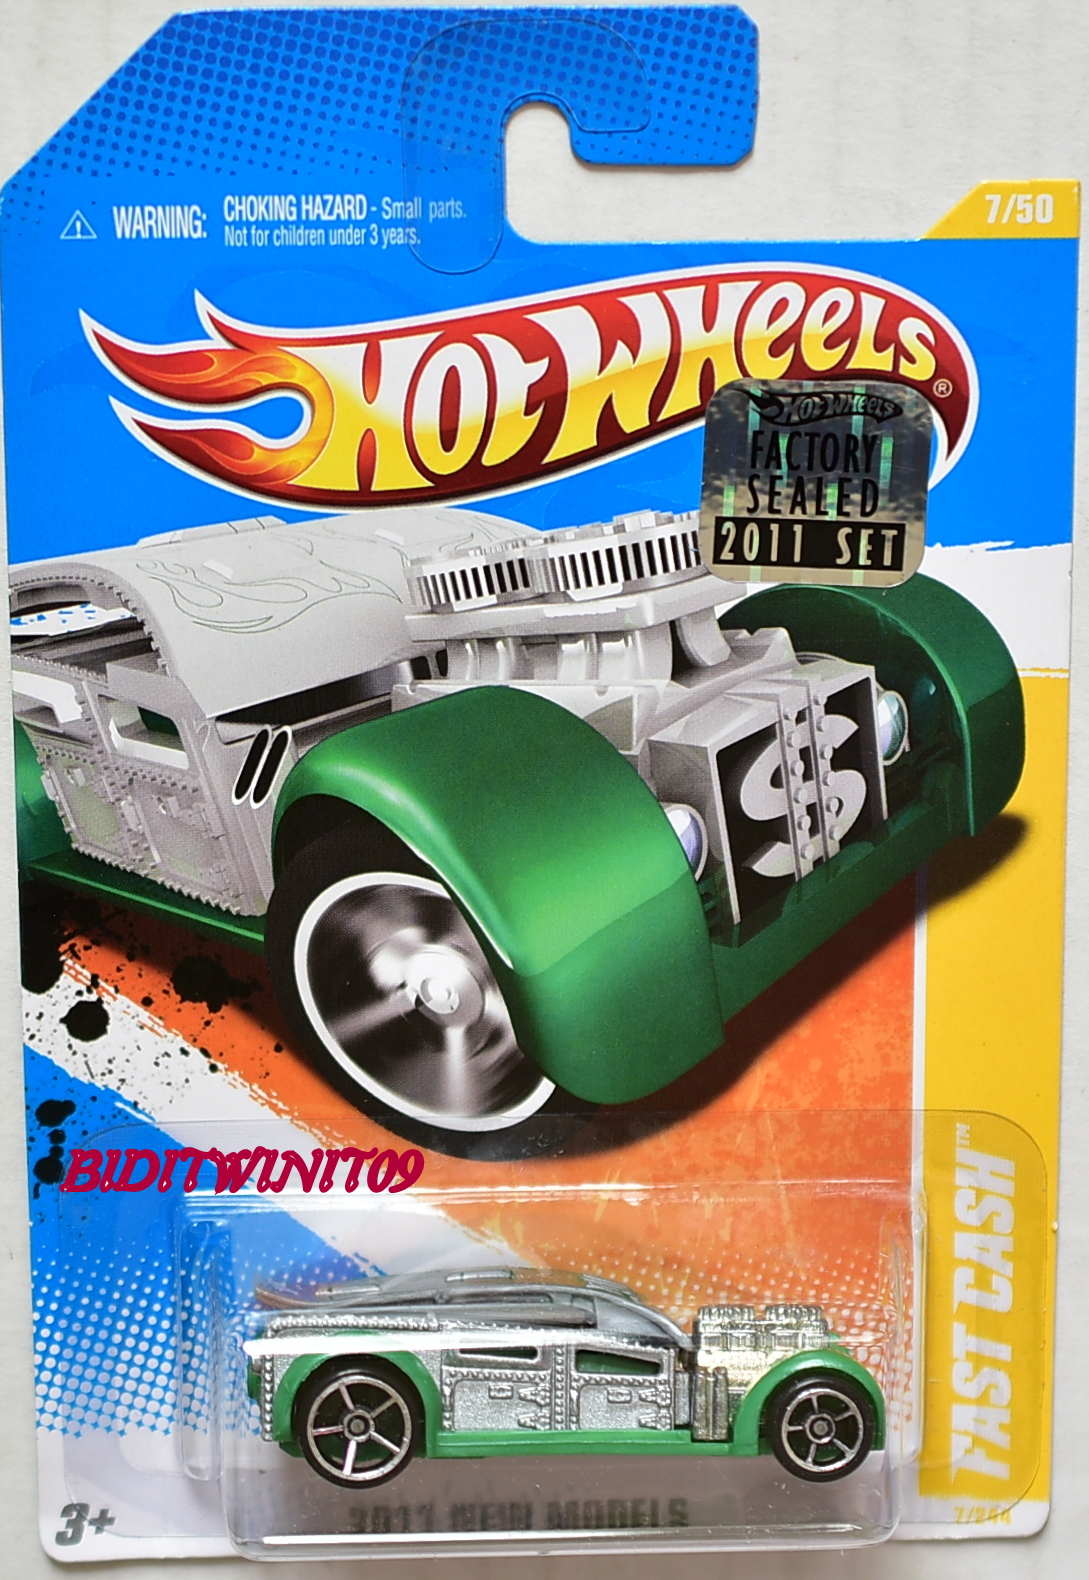 HOT WHEELS 2011 NEW MODELS FAST CASH #7/50 SILVER FACTORY SEALED